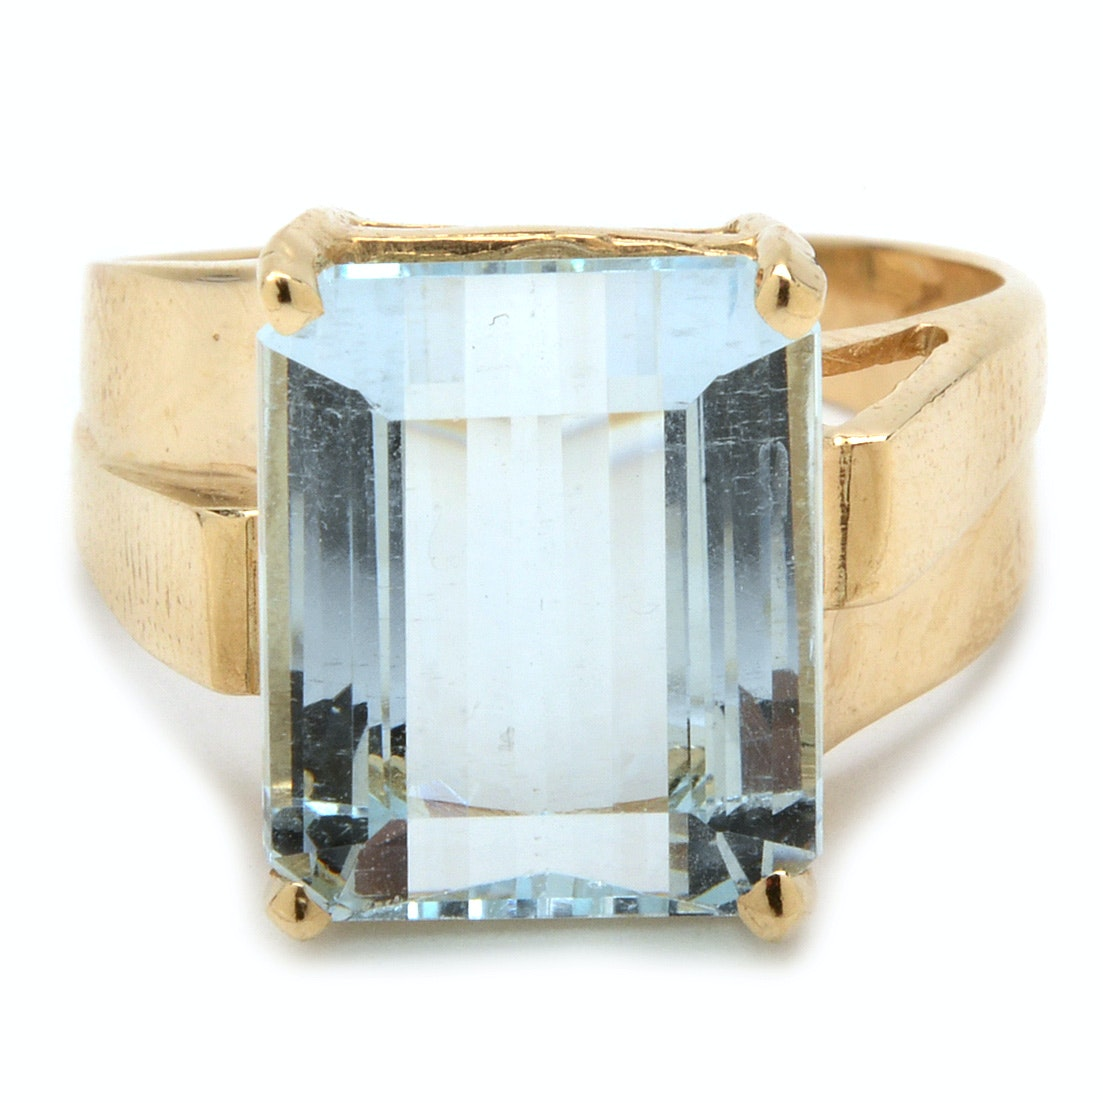 14K Yellow Gold 4.76 CT Aquamarine Statement Ring